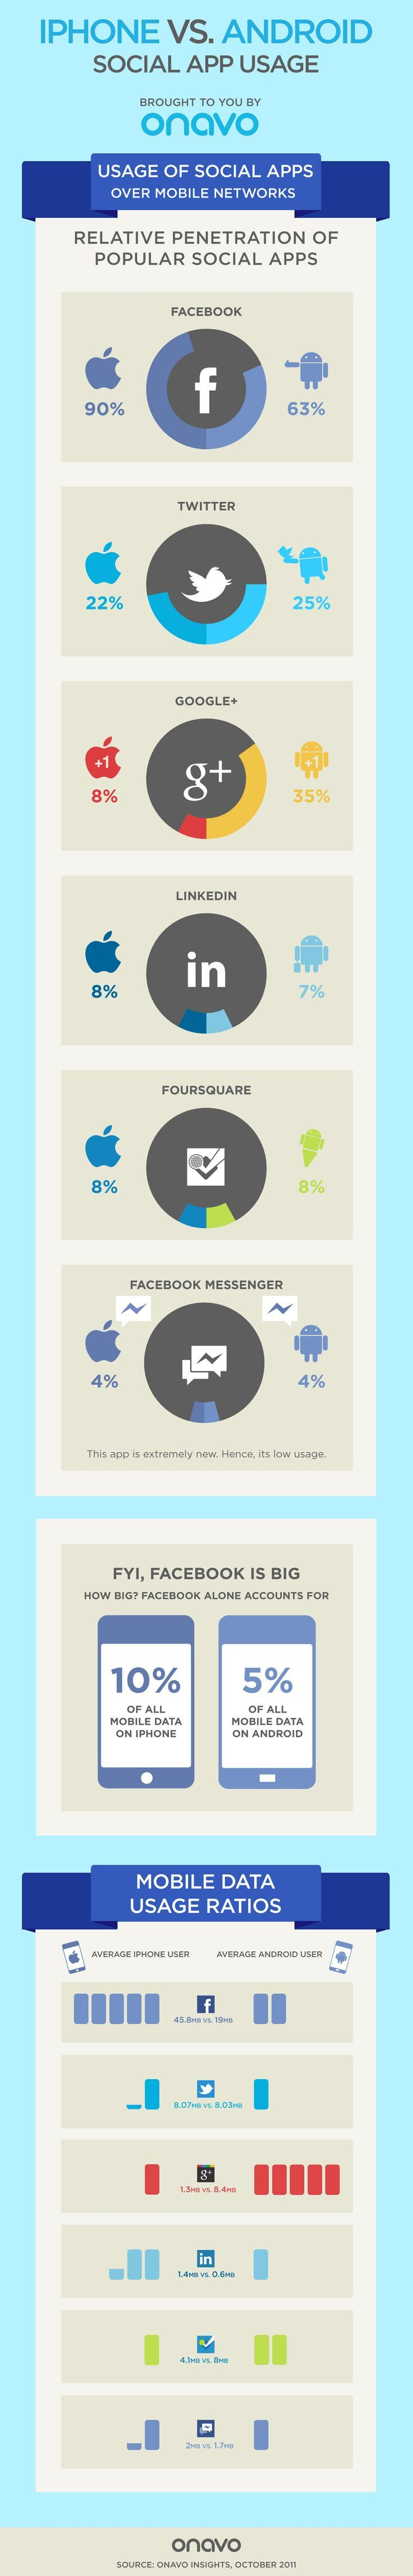 iPhone vs. Android The Social App Activities That Set